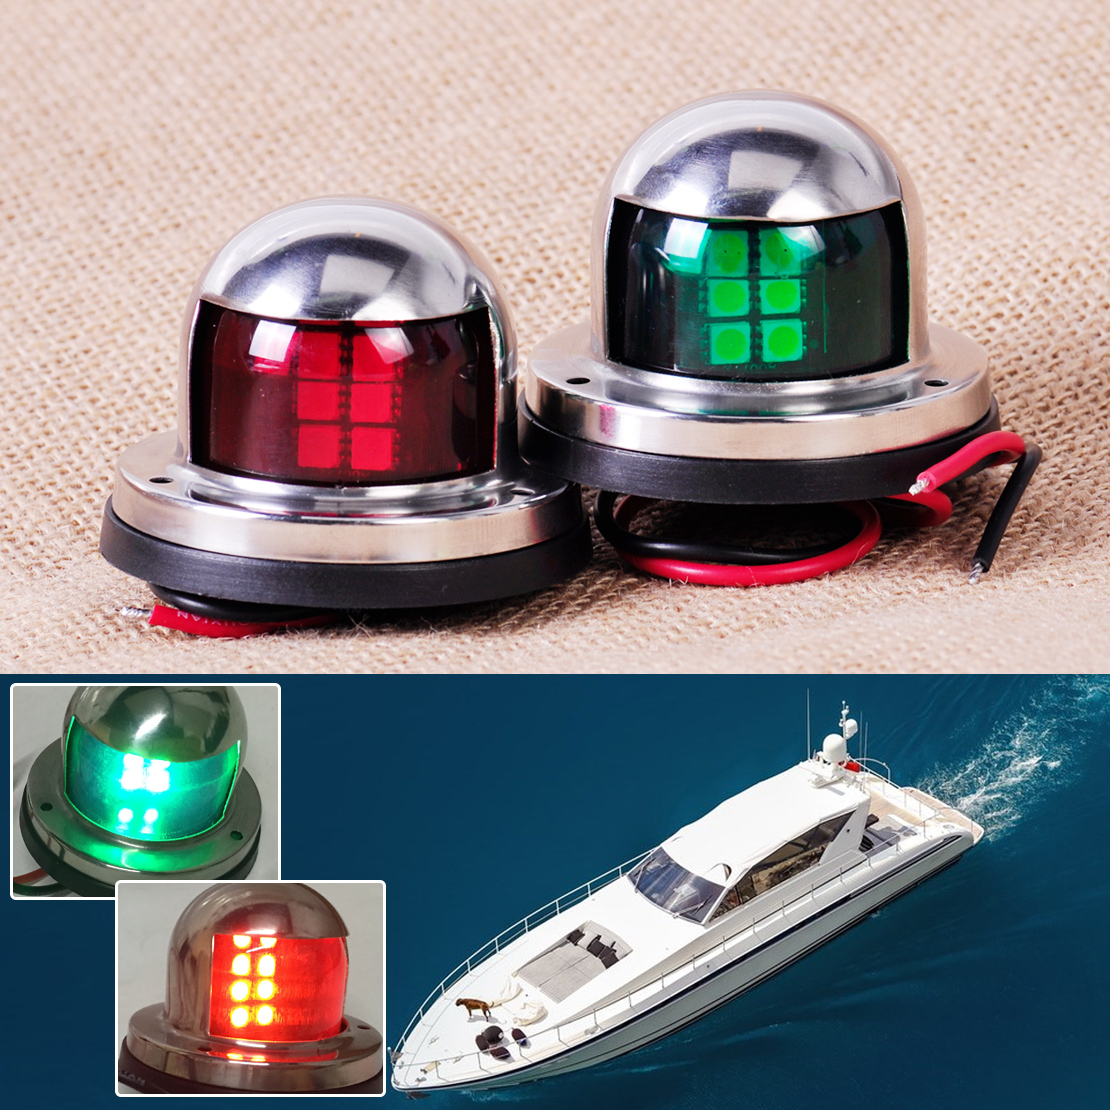 1 Pair Stainless Steel 12V LED Bow Navigation Light Red Green Sailing Signal Light for Marine Boat Yacht